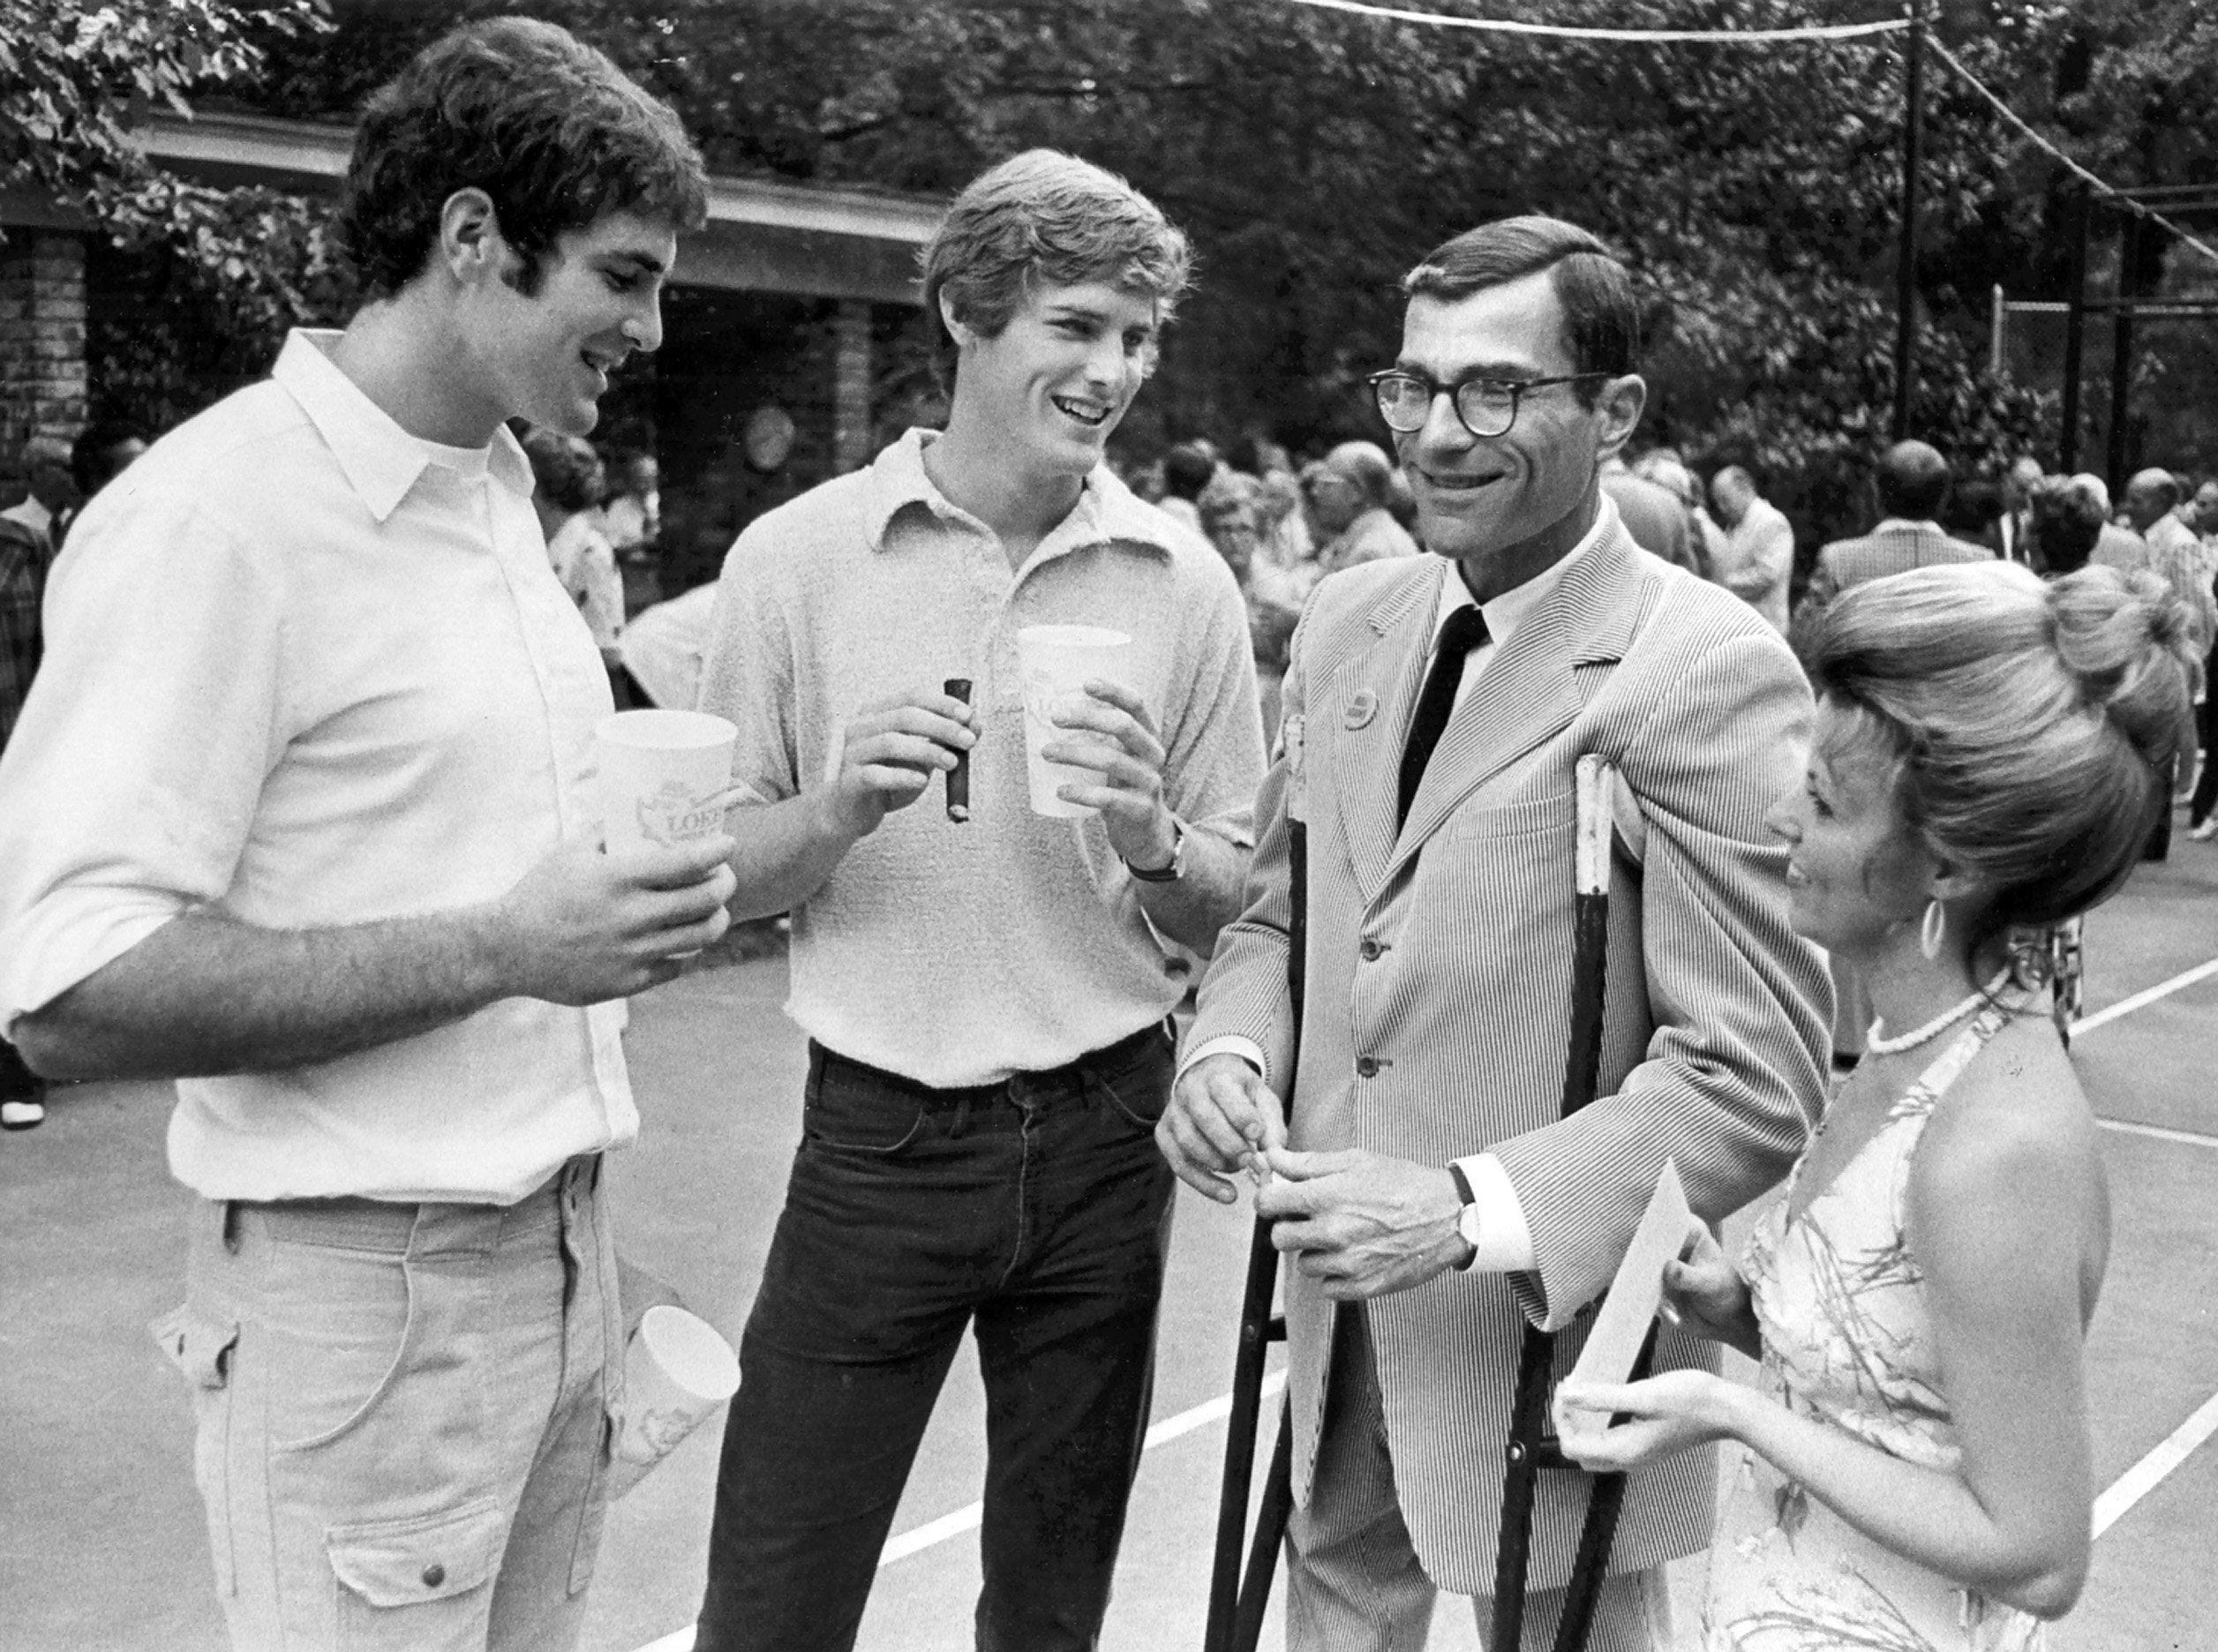 From left, Louis Loeb and Bob Loeb join their father Bill Loeb, and Miss Karen Ellis on 8 Aug 1975 to help celebrate the elder Loeb's 52nd birthday. About 2,000 people were invited to the party, held on the tennis courts at the Loeb home on Central Avenue.